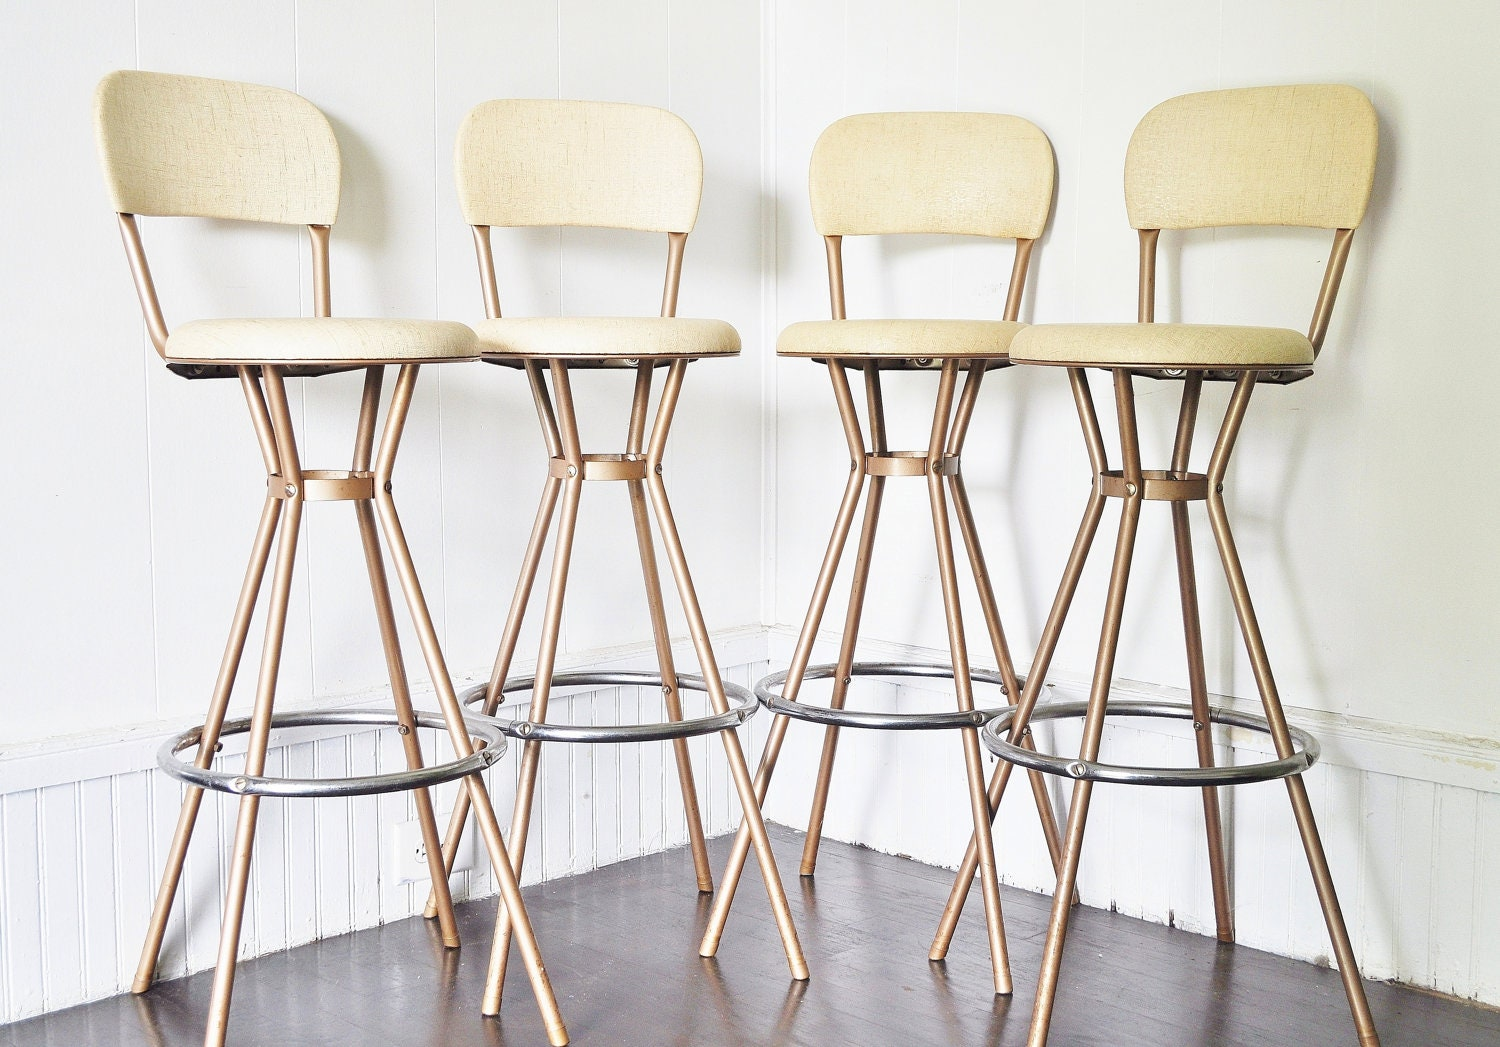 Bar Stools Made by Cosco zoom